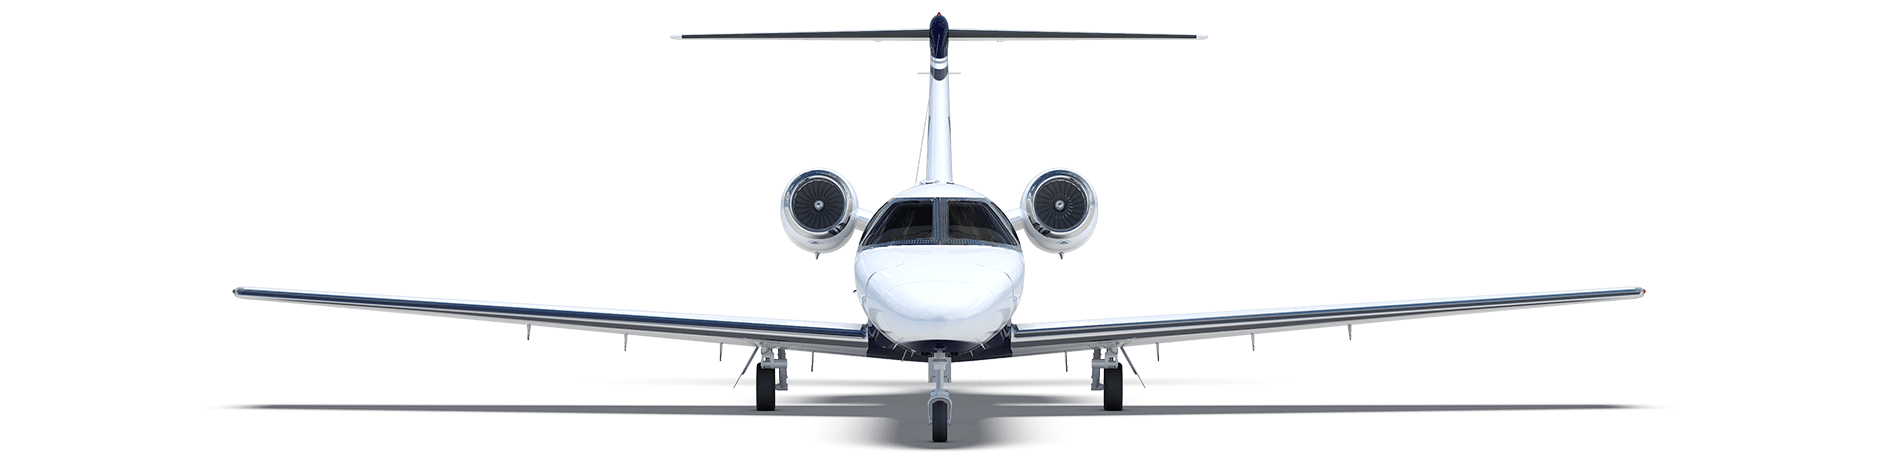 Cessna drawing plan view. Citation cj airborne solutions